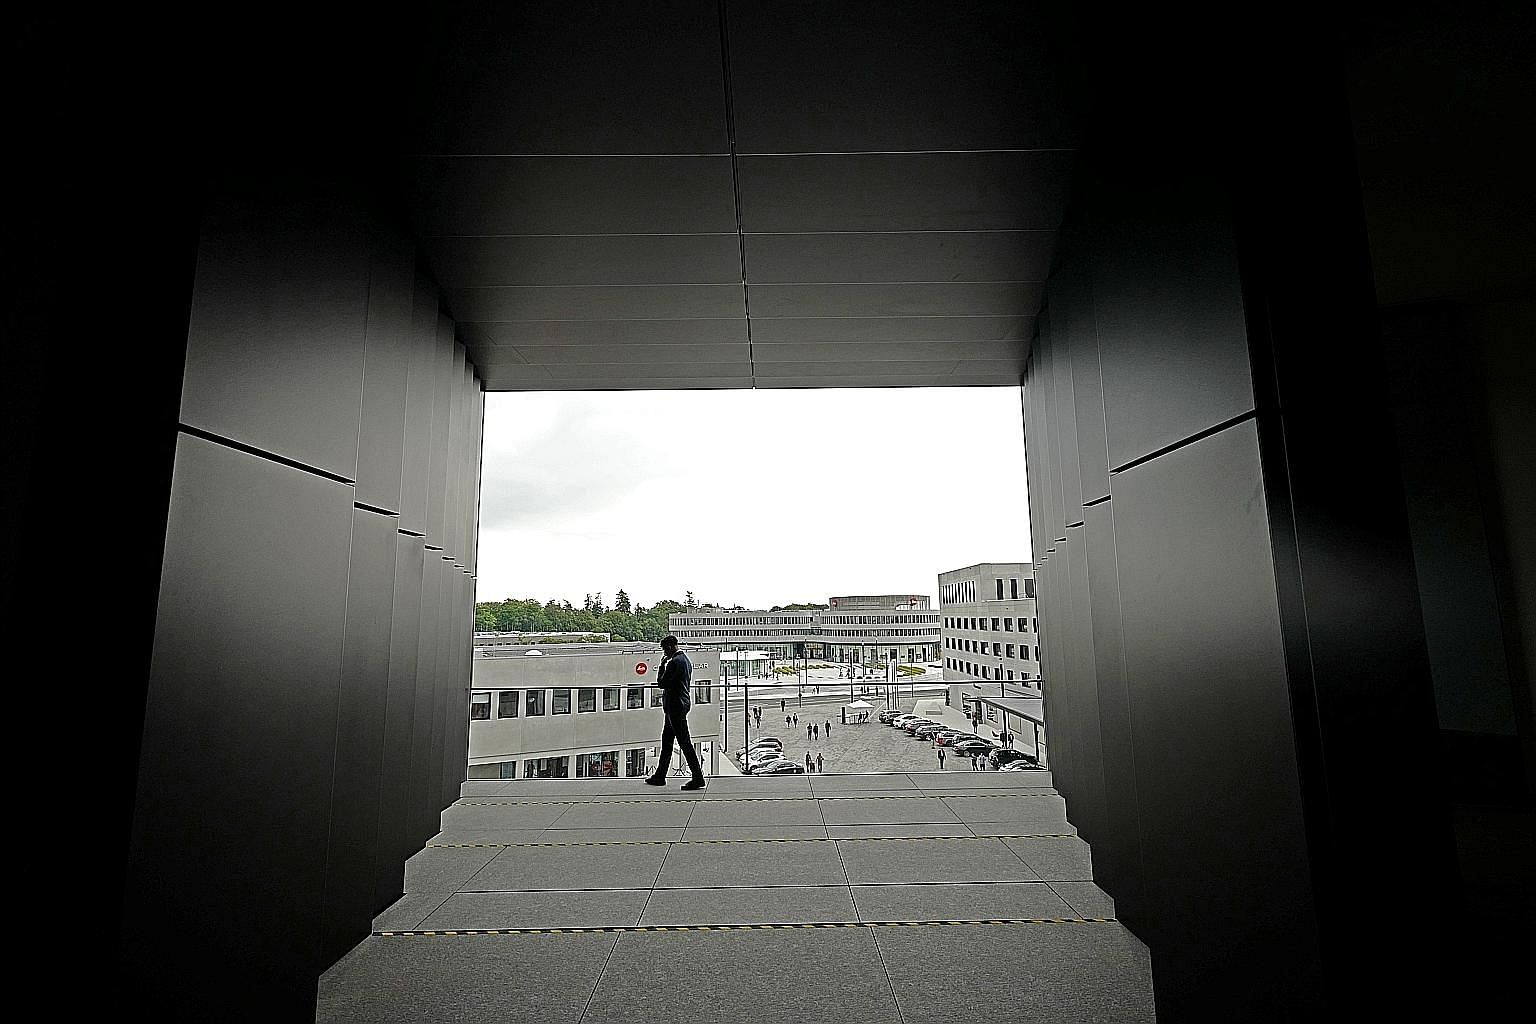 """A view from inside the giant """"viewfinder"""" balcony of the new Leica Camera AG building that gives visitors a bird's eye view of the Leitz Park complex. Leica Archive guide Maria-Victoria Furst showing historical items such as shovels used for ground-b"""